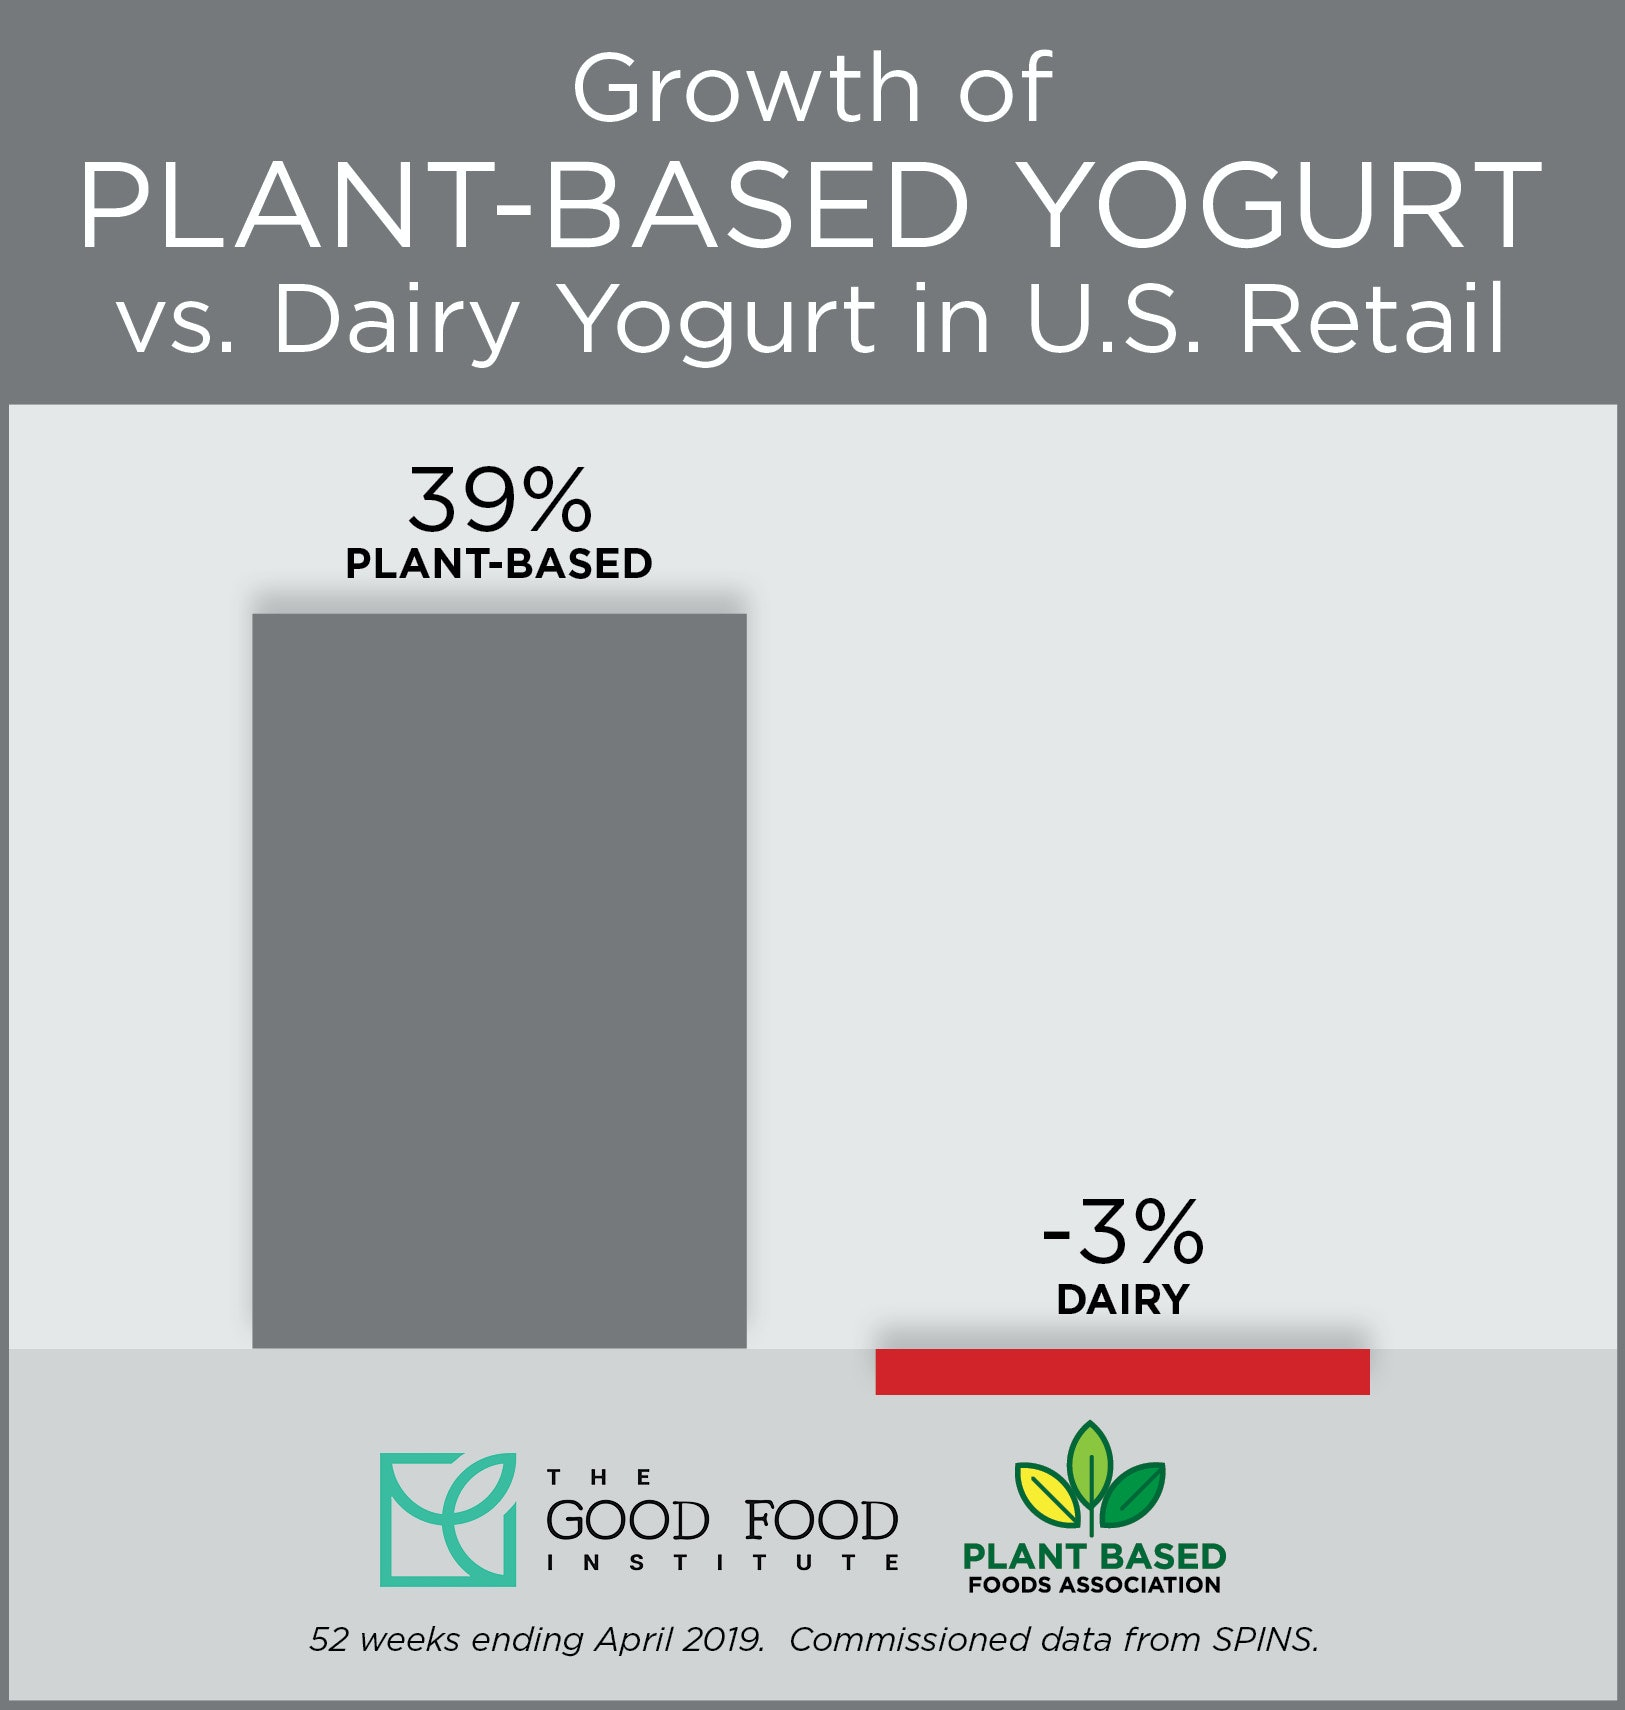 Yogurt growth over the past year.